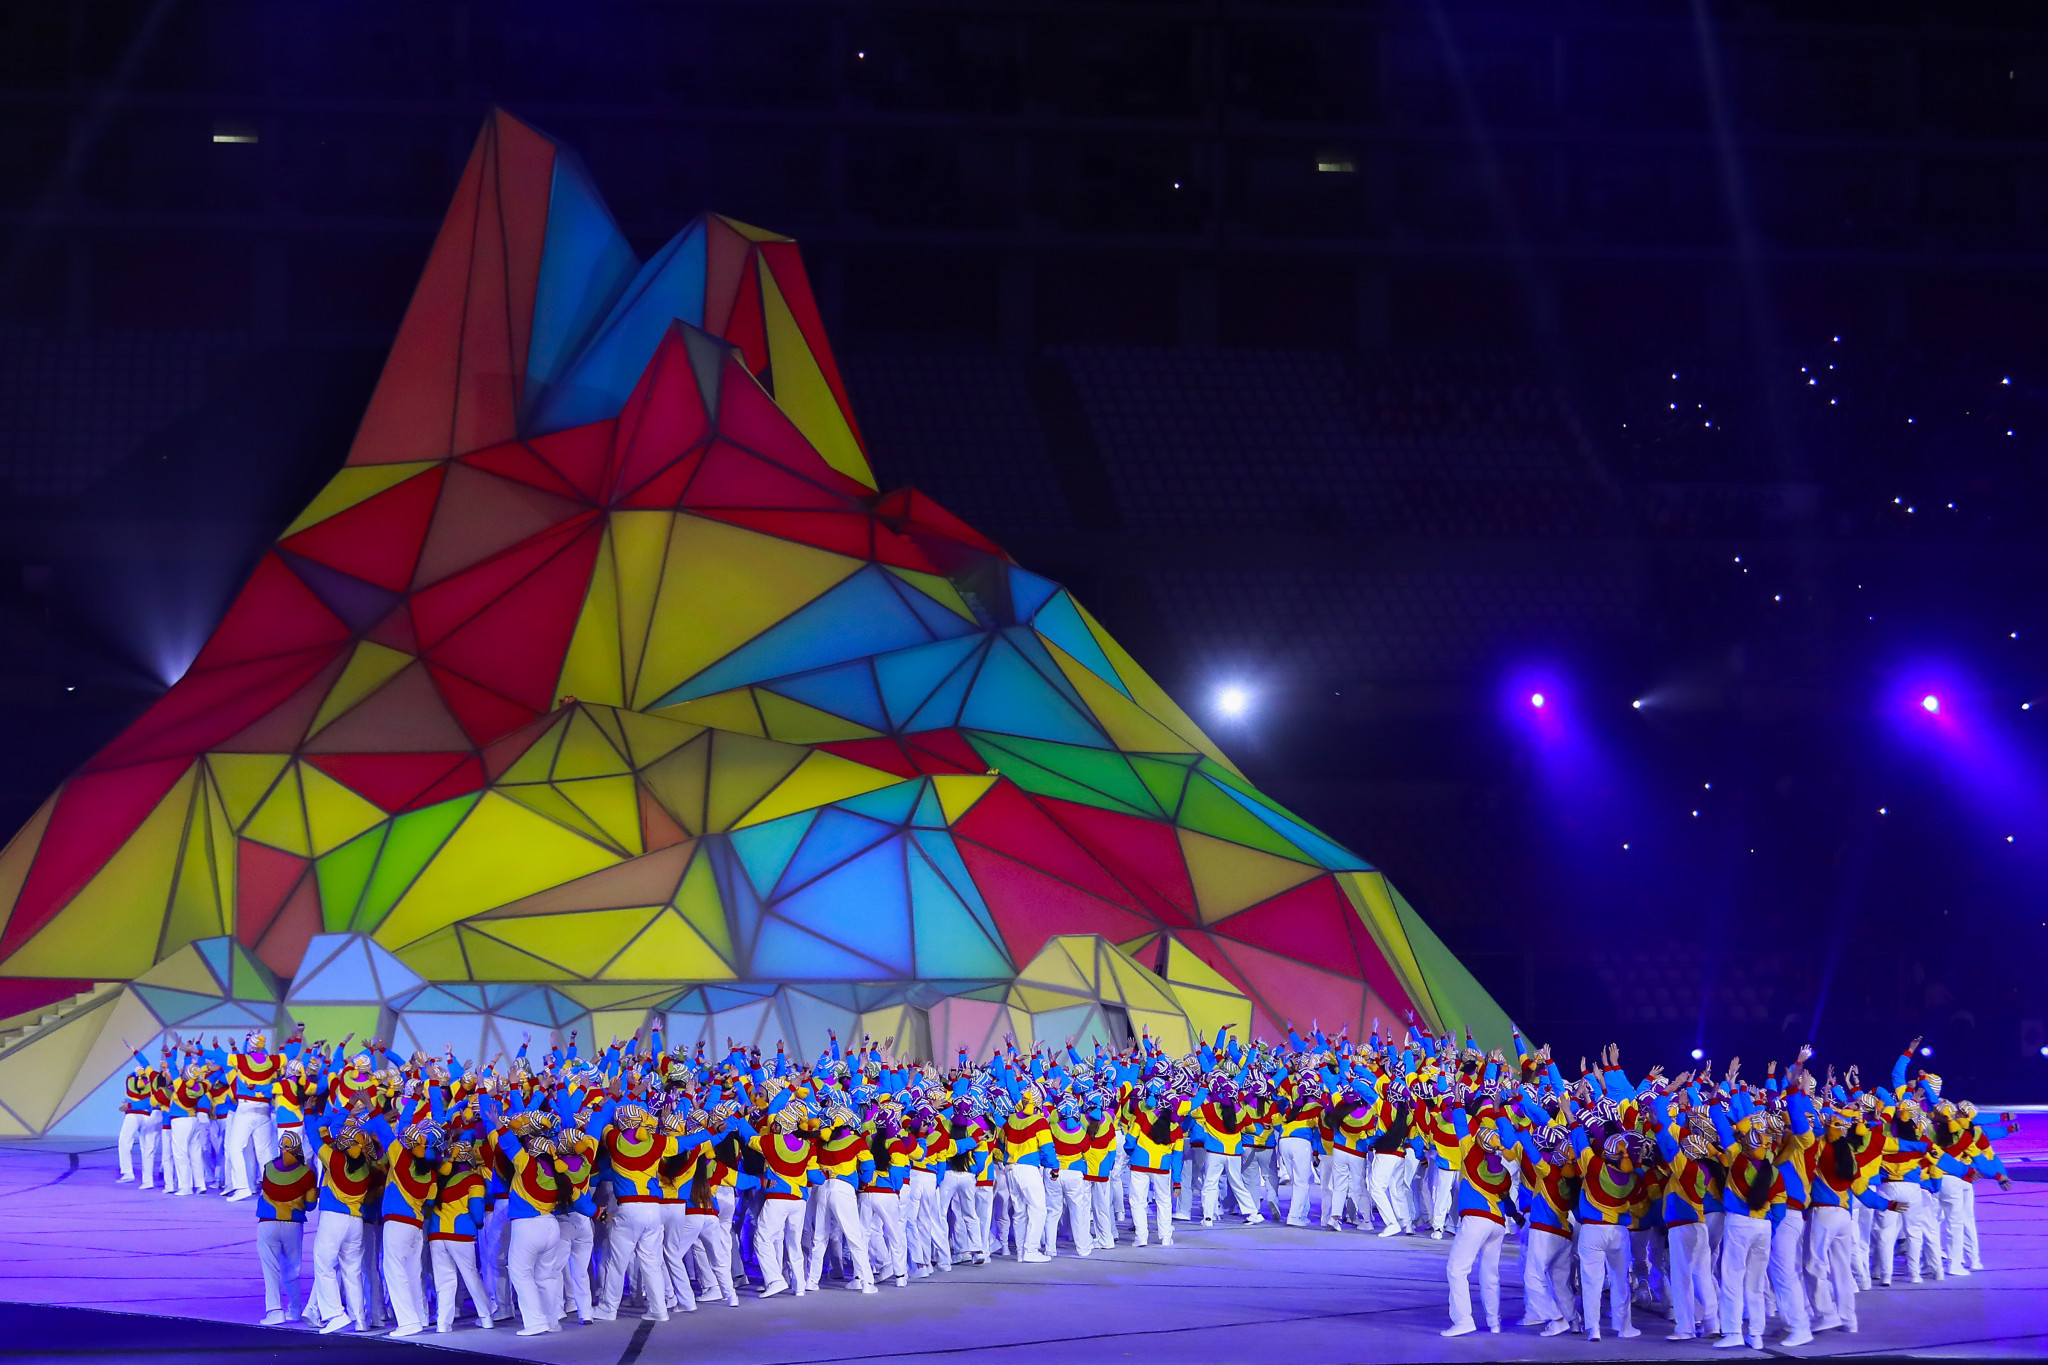 Pan American Games Opening Ceremony lights up Lima